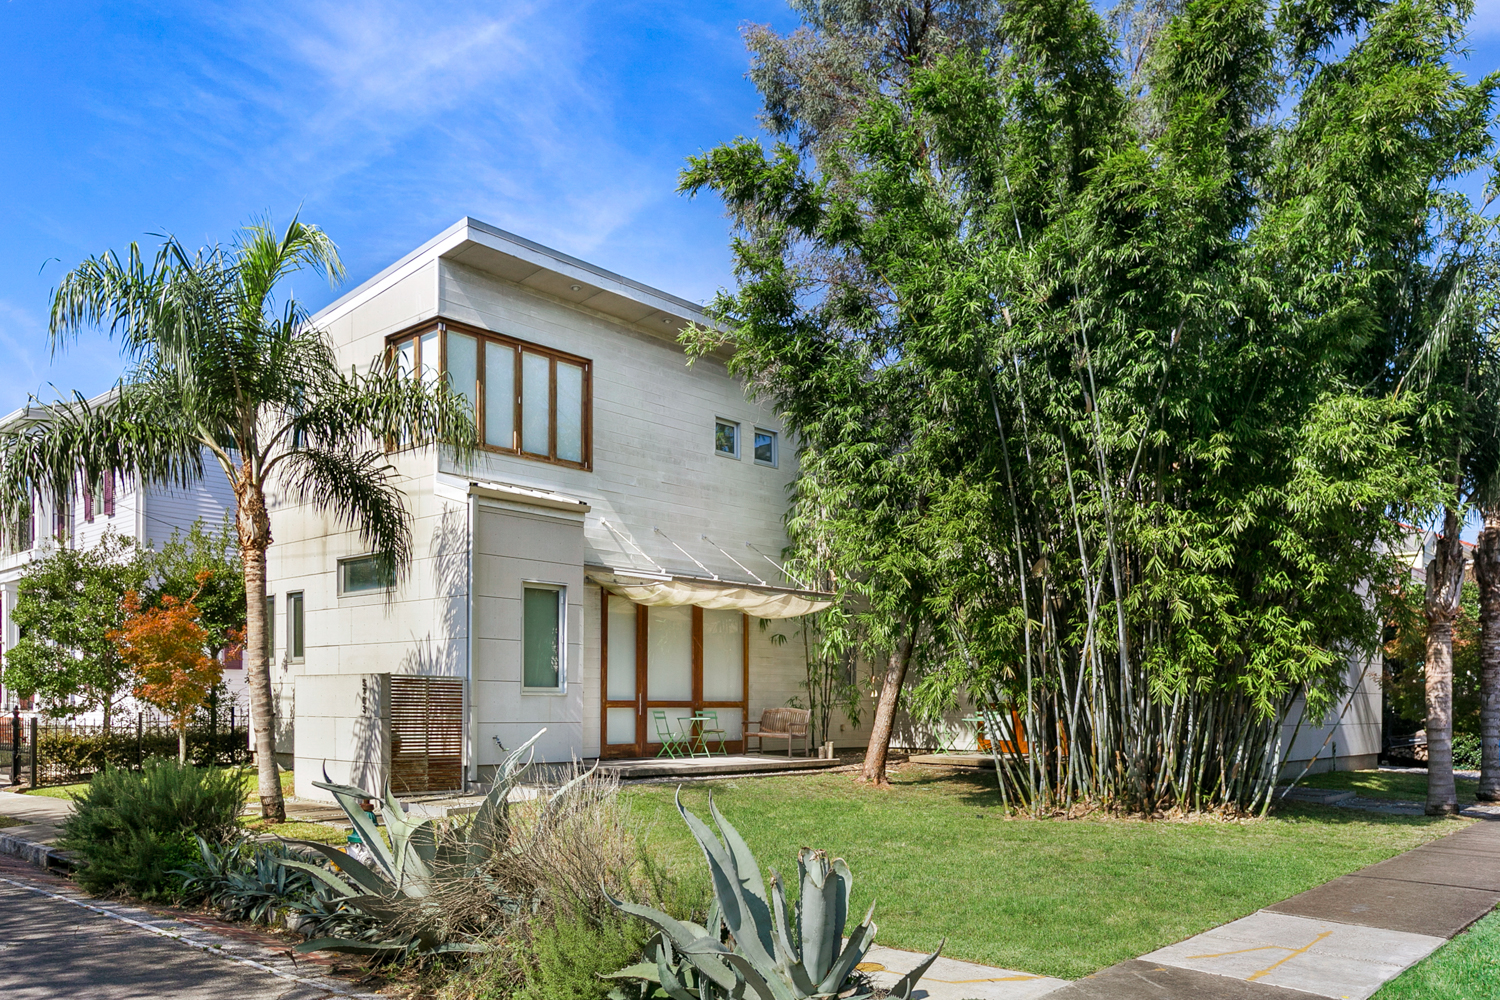 Incredible NEW Modern Industrial 2 bedroom/ 3 bath condo with lots of natural light. Located in one of the best areas Uptown. Walk to Wholefoods/Magazine/ Audubon Park. Walk to many restaurants, retail shops, coffee shops and much more! A must see!!